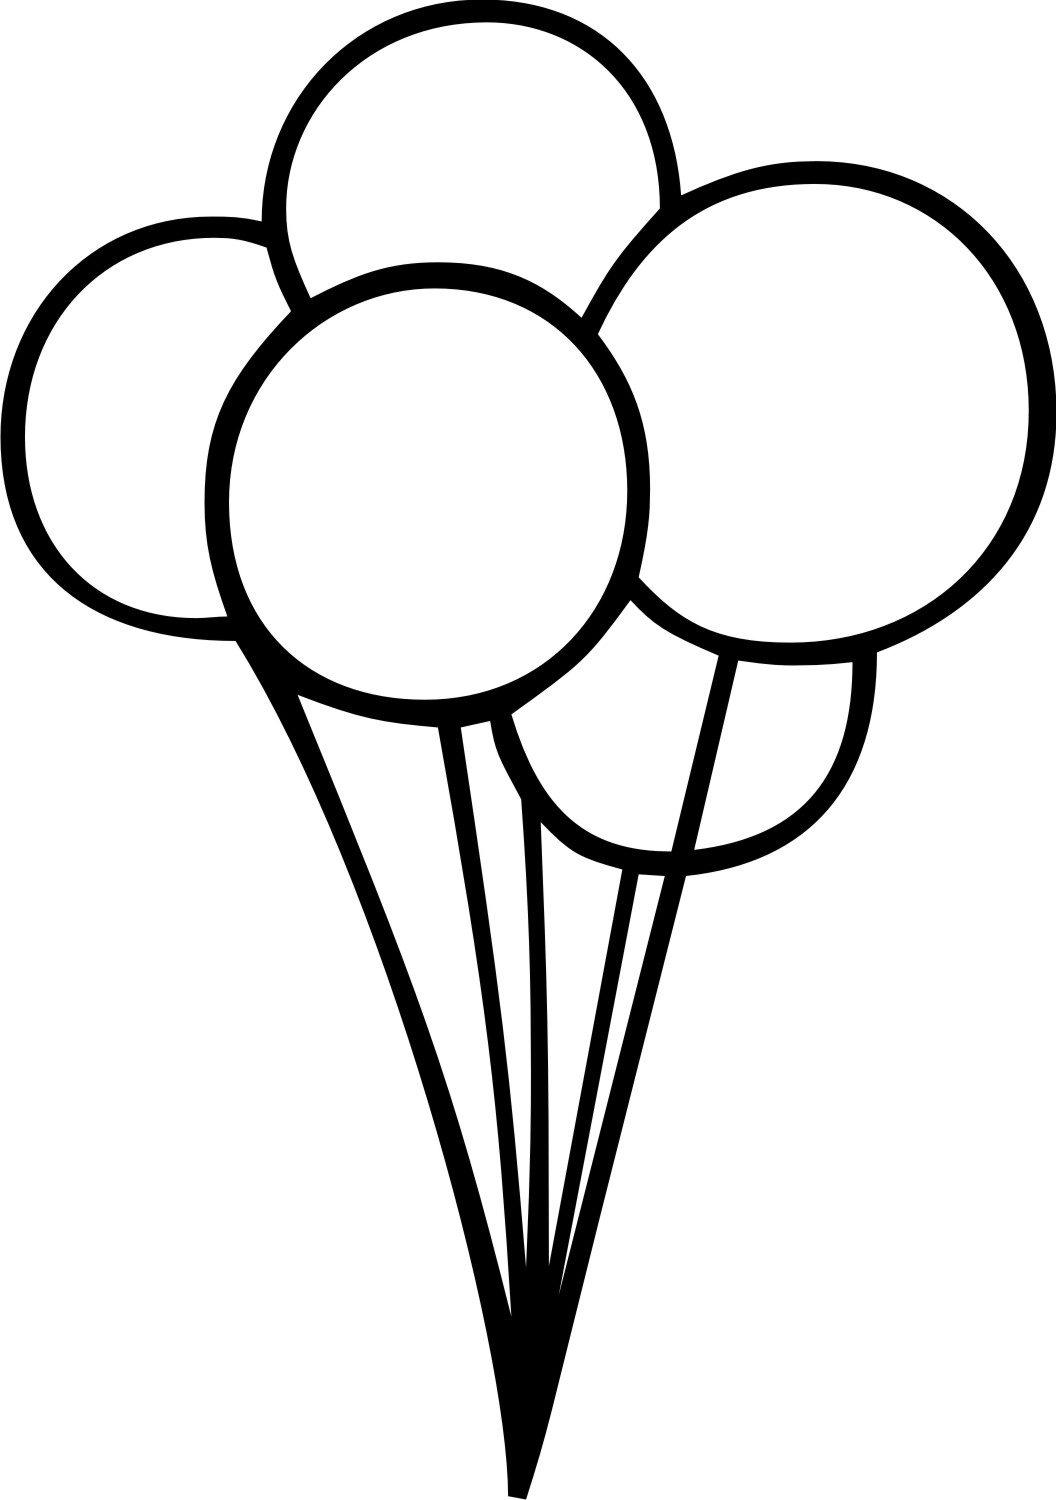 Black Balloons Clipart